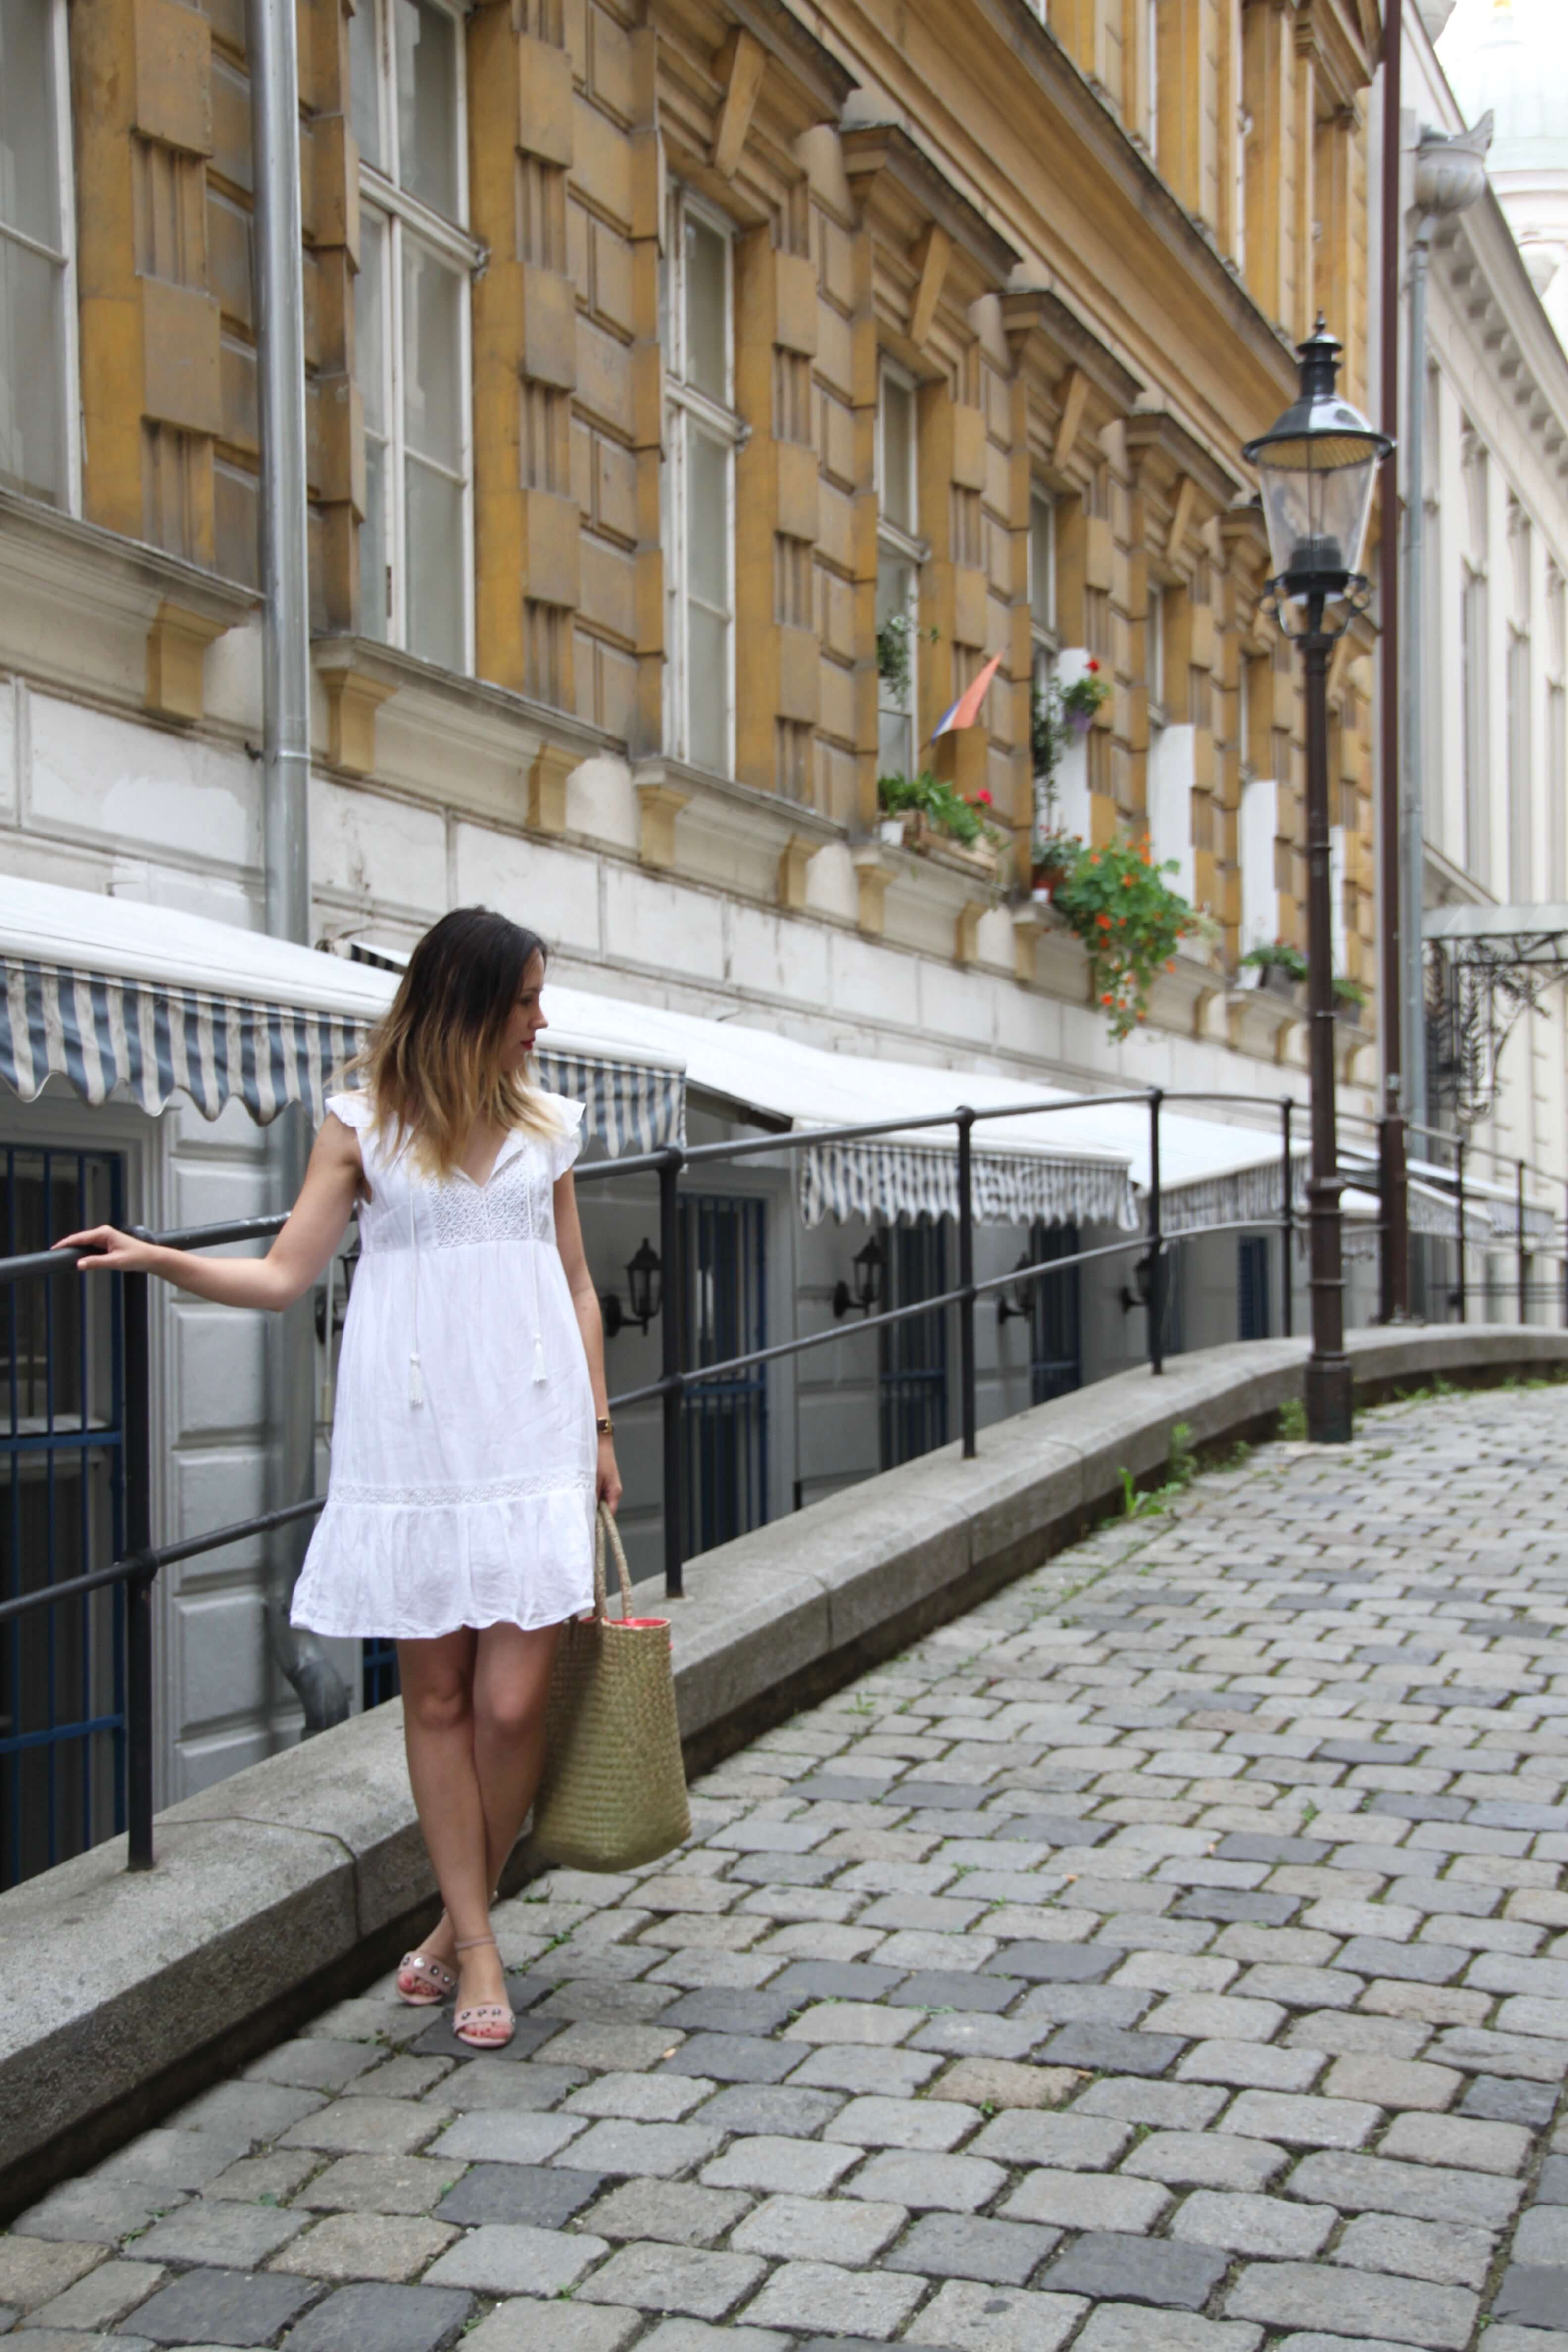 Summeroutfit white dress and straw bag